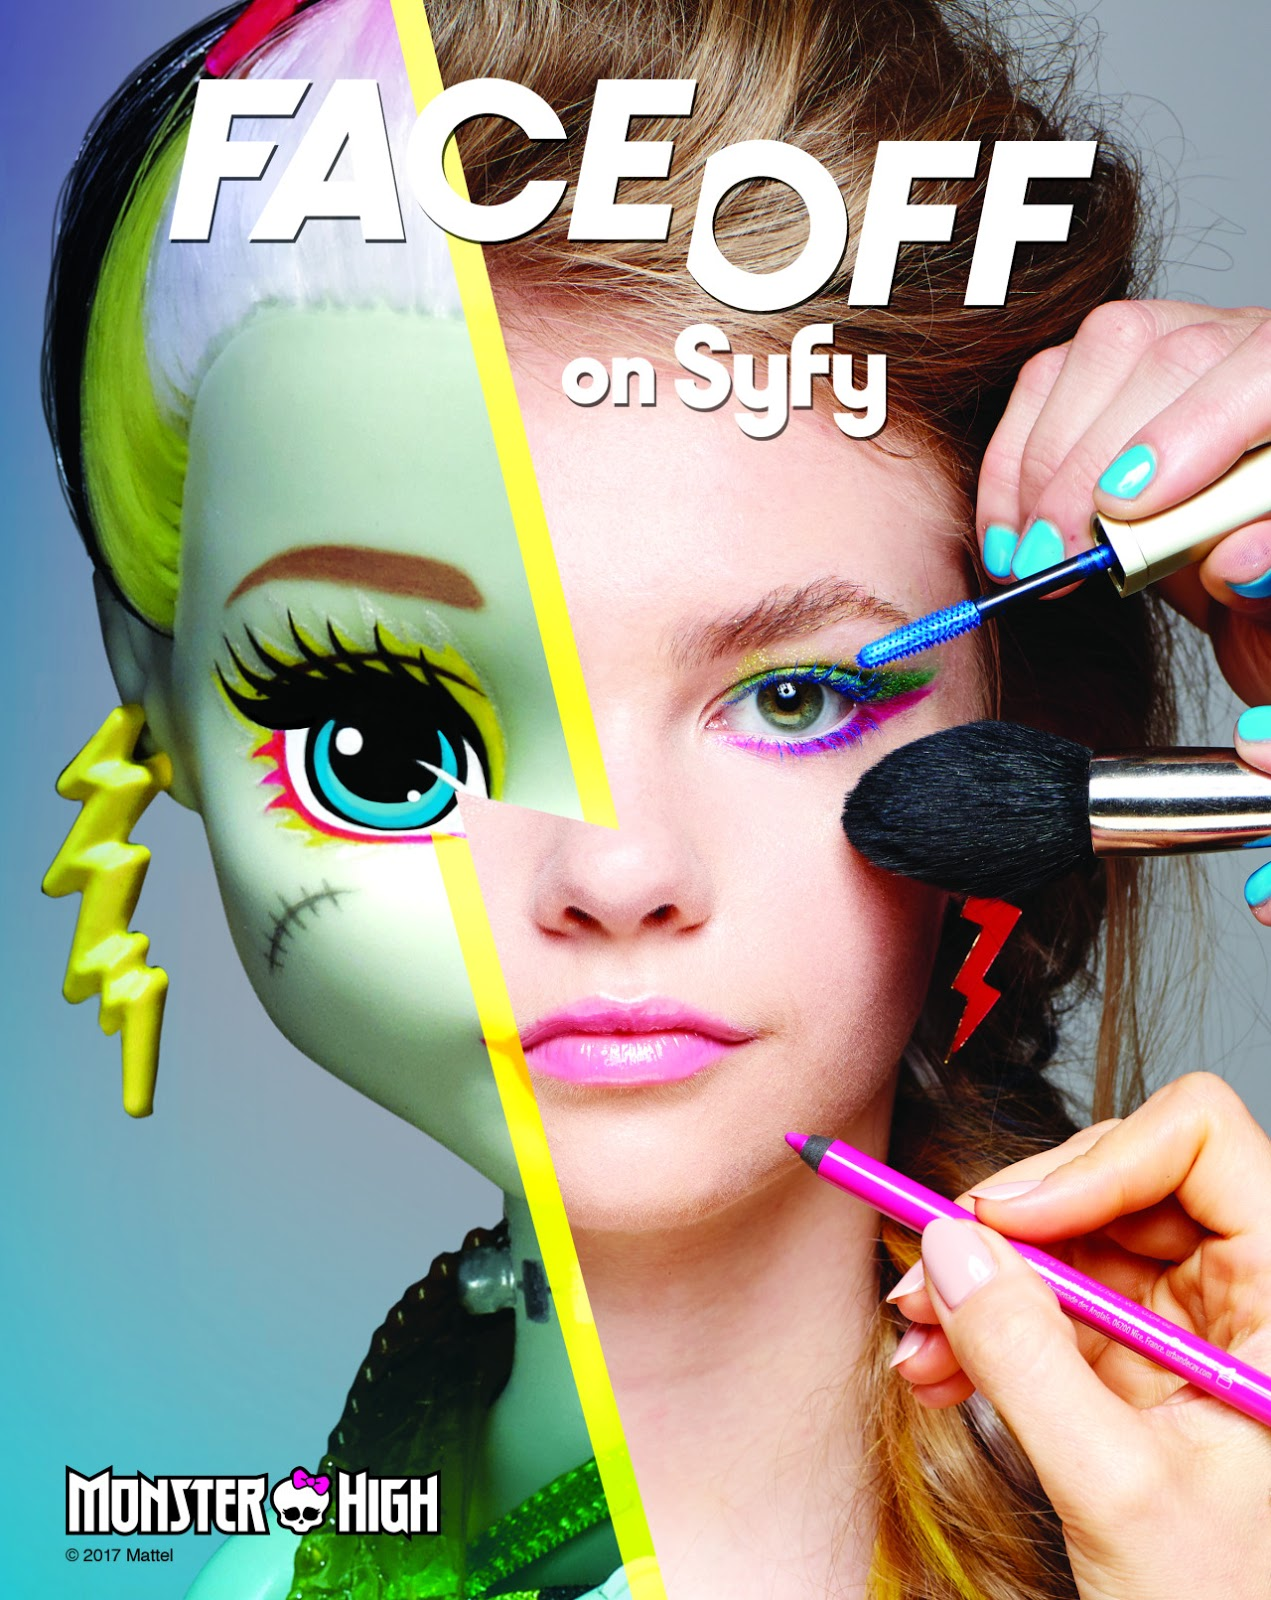 c443a7281ab Monster High on SyFy's Face-off - Monster High Dolls .com